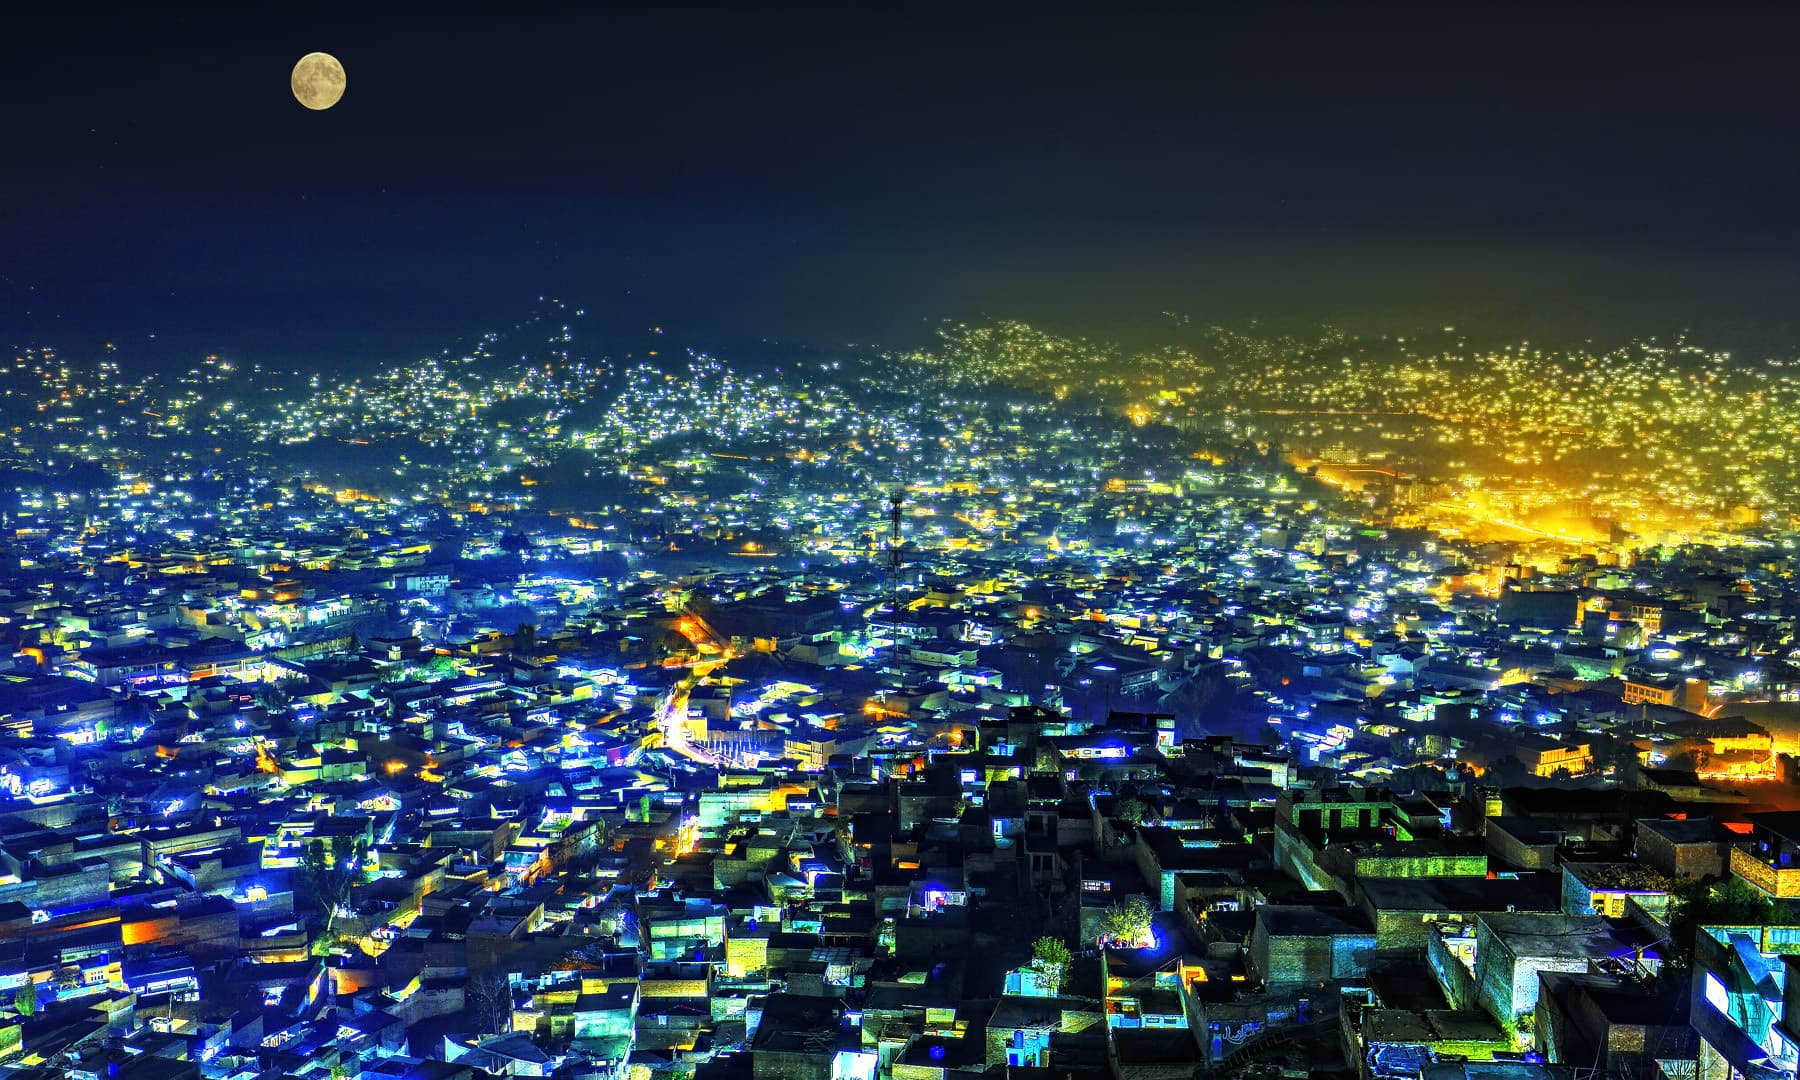 Mingora at night.